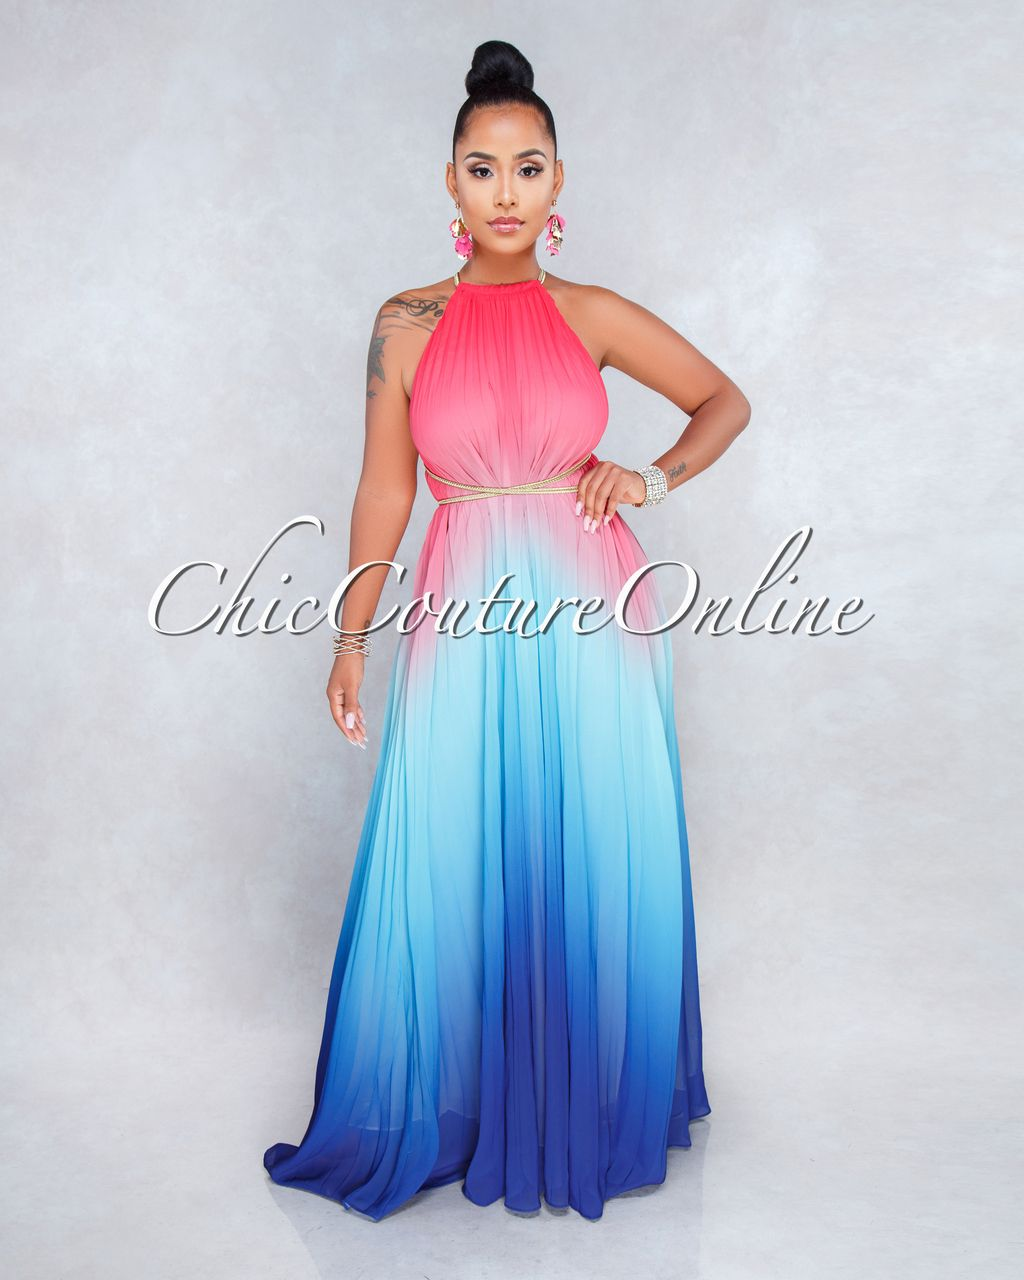 6b28cedbc Chic Couture Online - Lose Control Pink Blue Ombre Halter Maxi Dress,  (https: